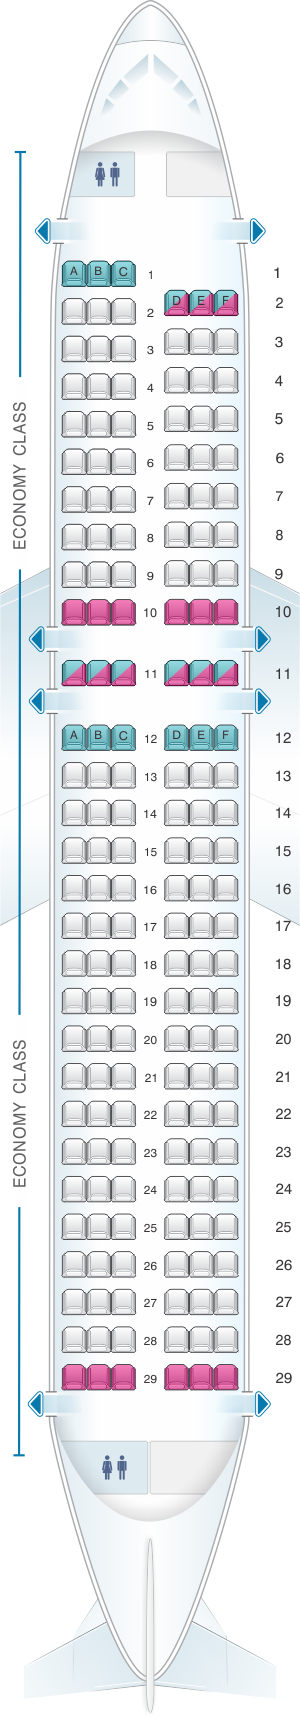 Seat map for Air New Zealand Airbus A320 Domestic